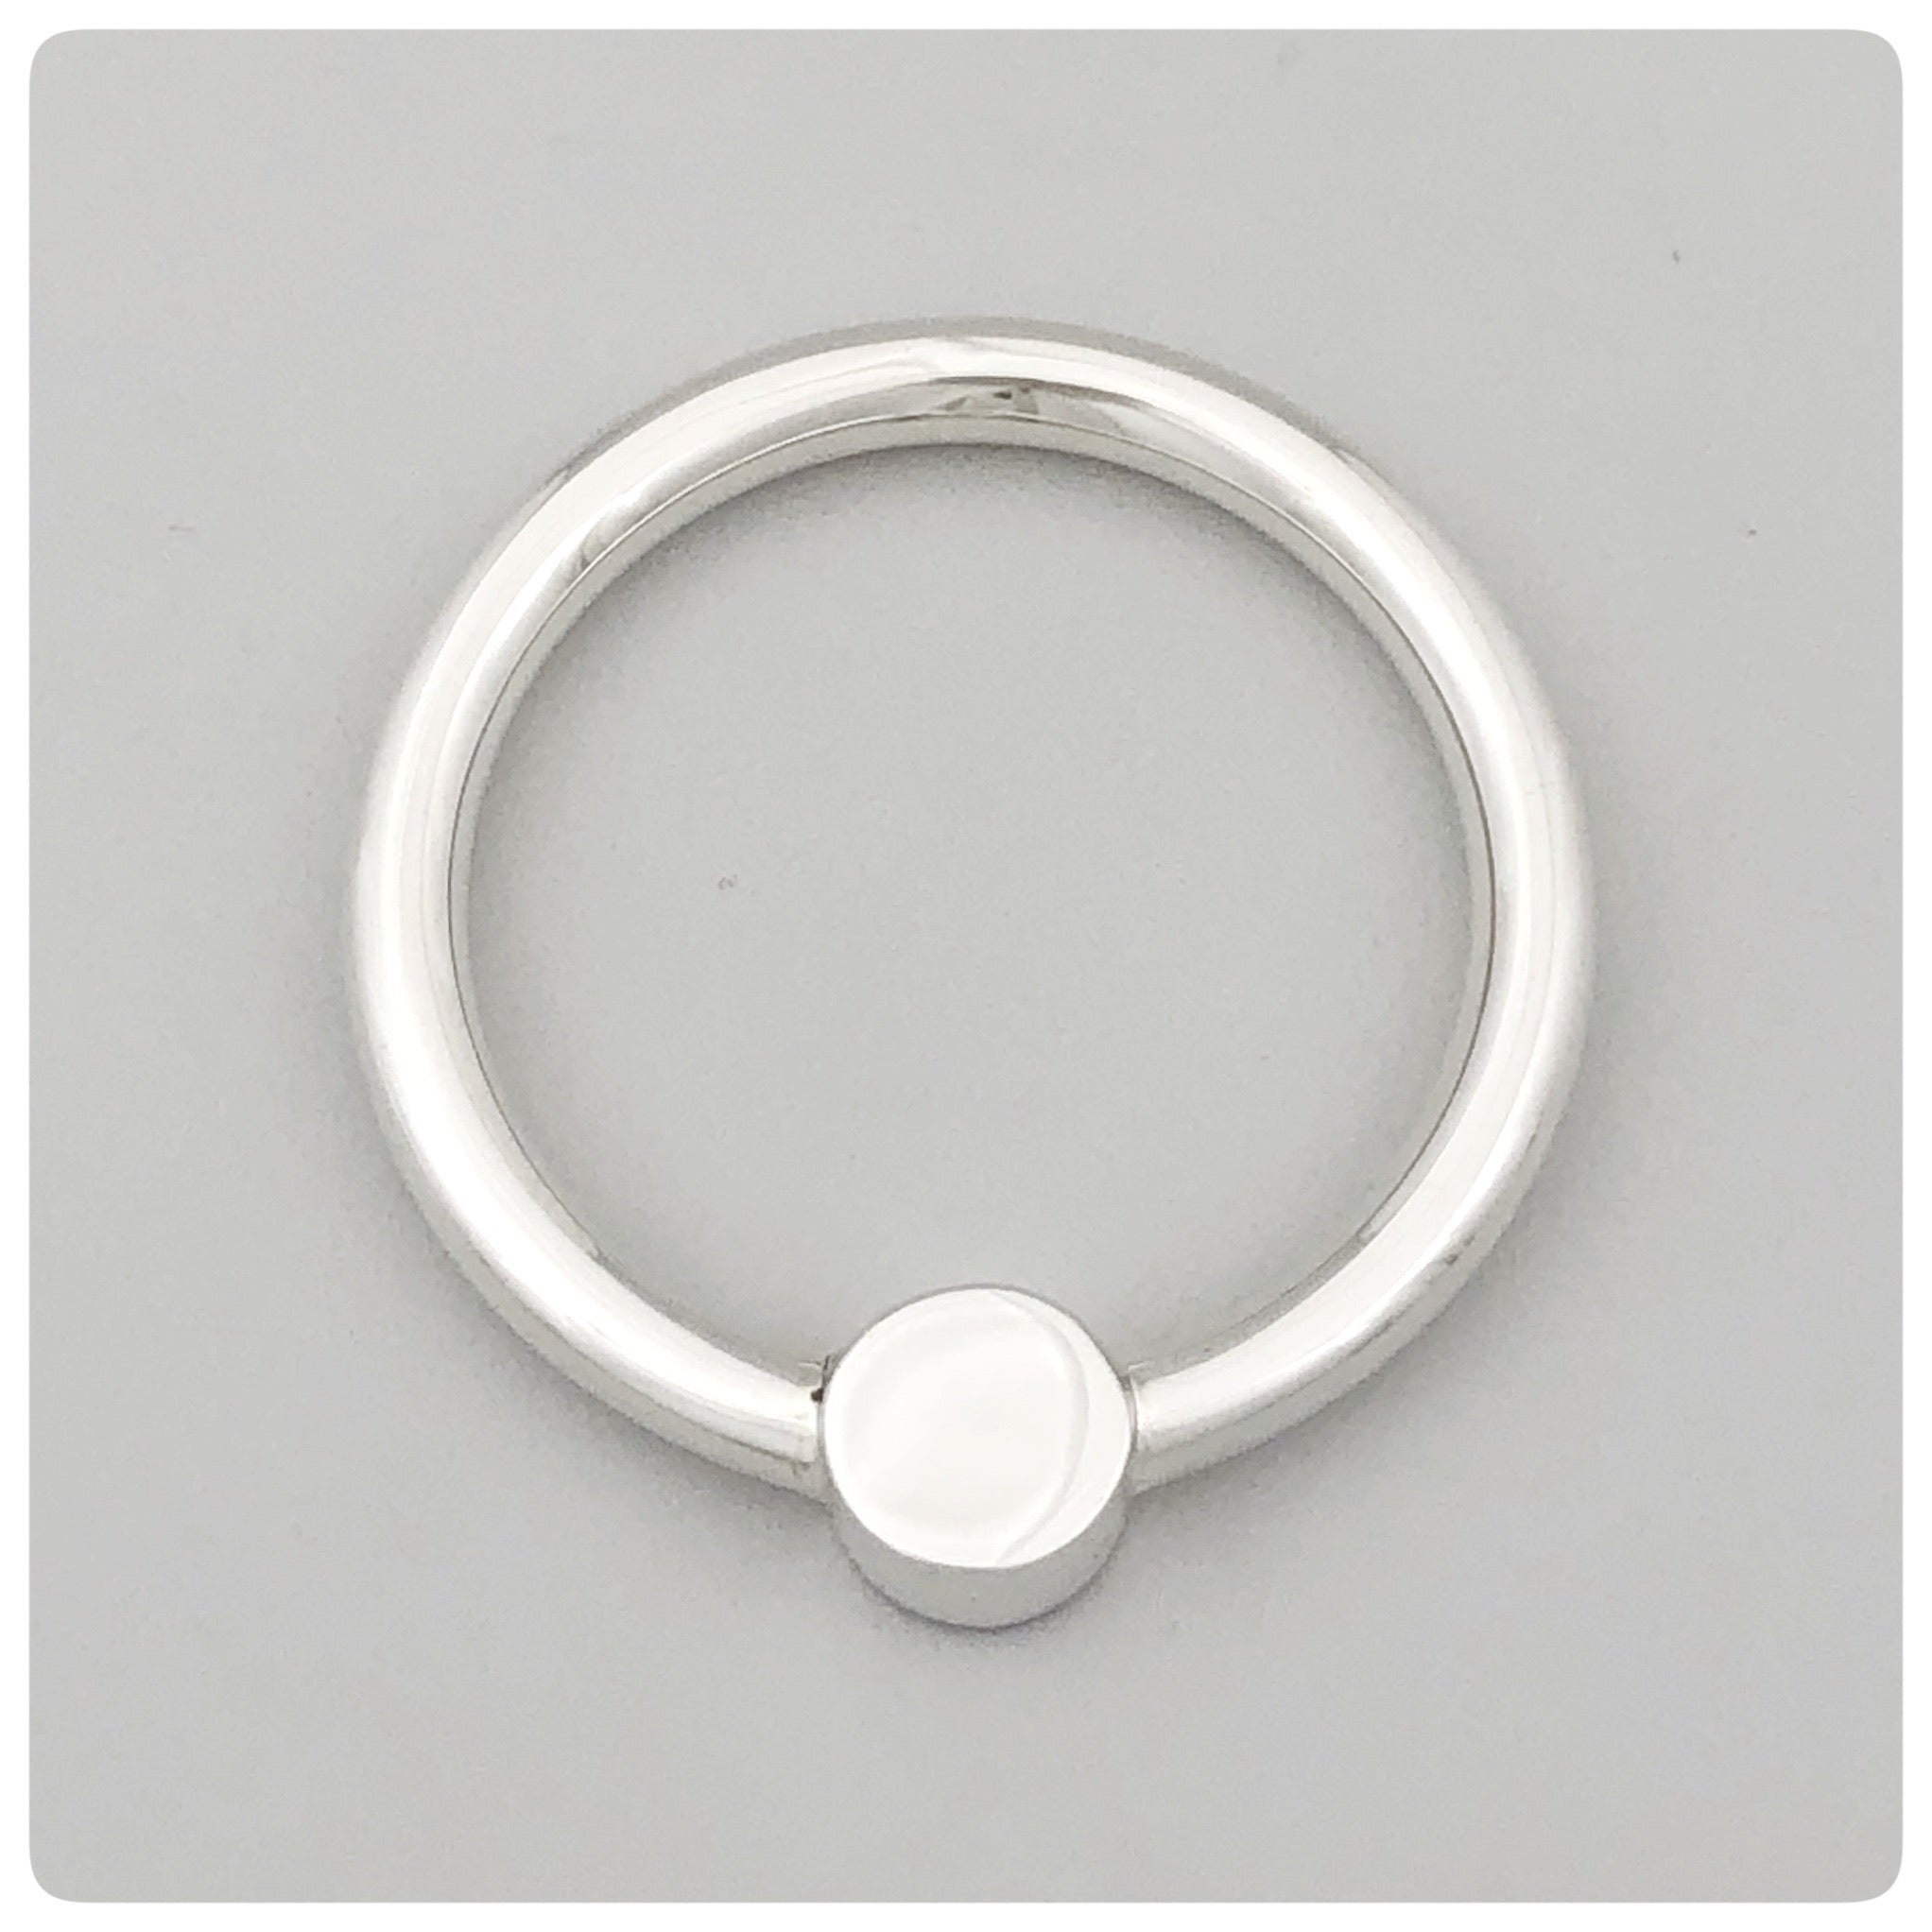 Sterling Silver Circular Teething Ring and Rattle, The Prince Company, Pawley's Island, SC, New - The Silver Vault of Charleston